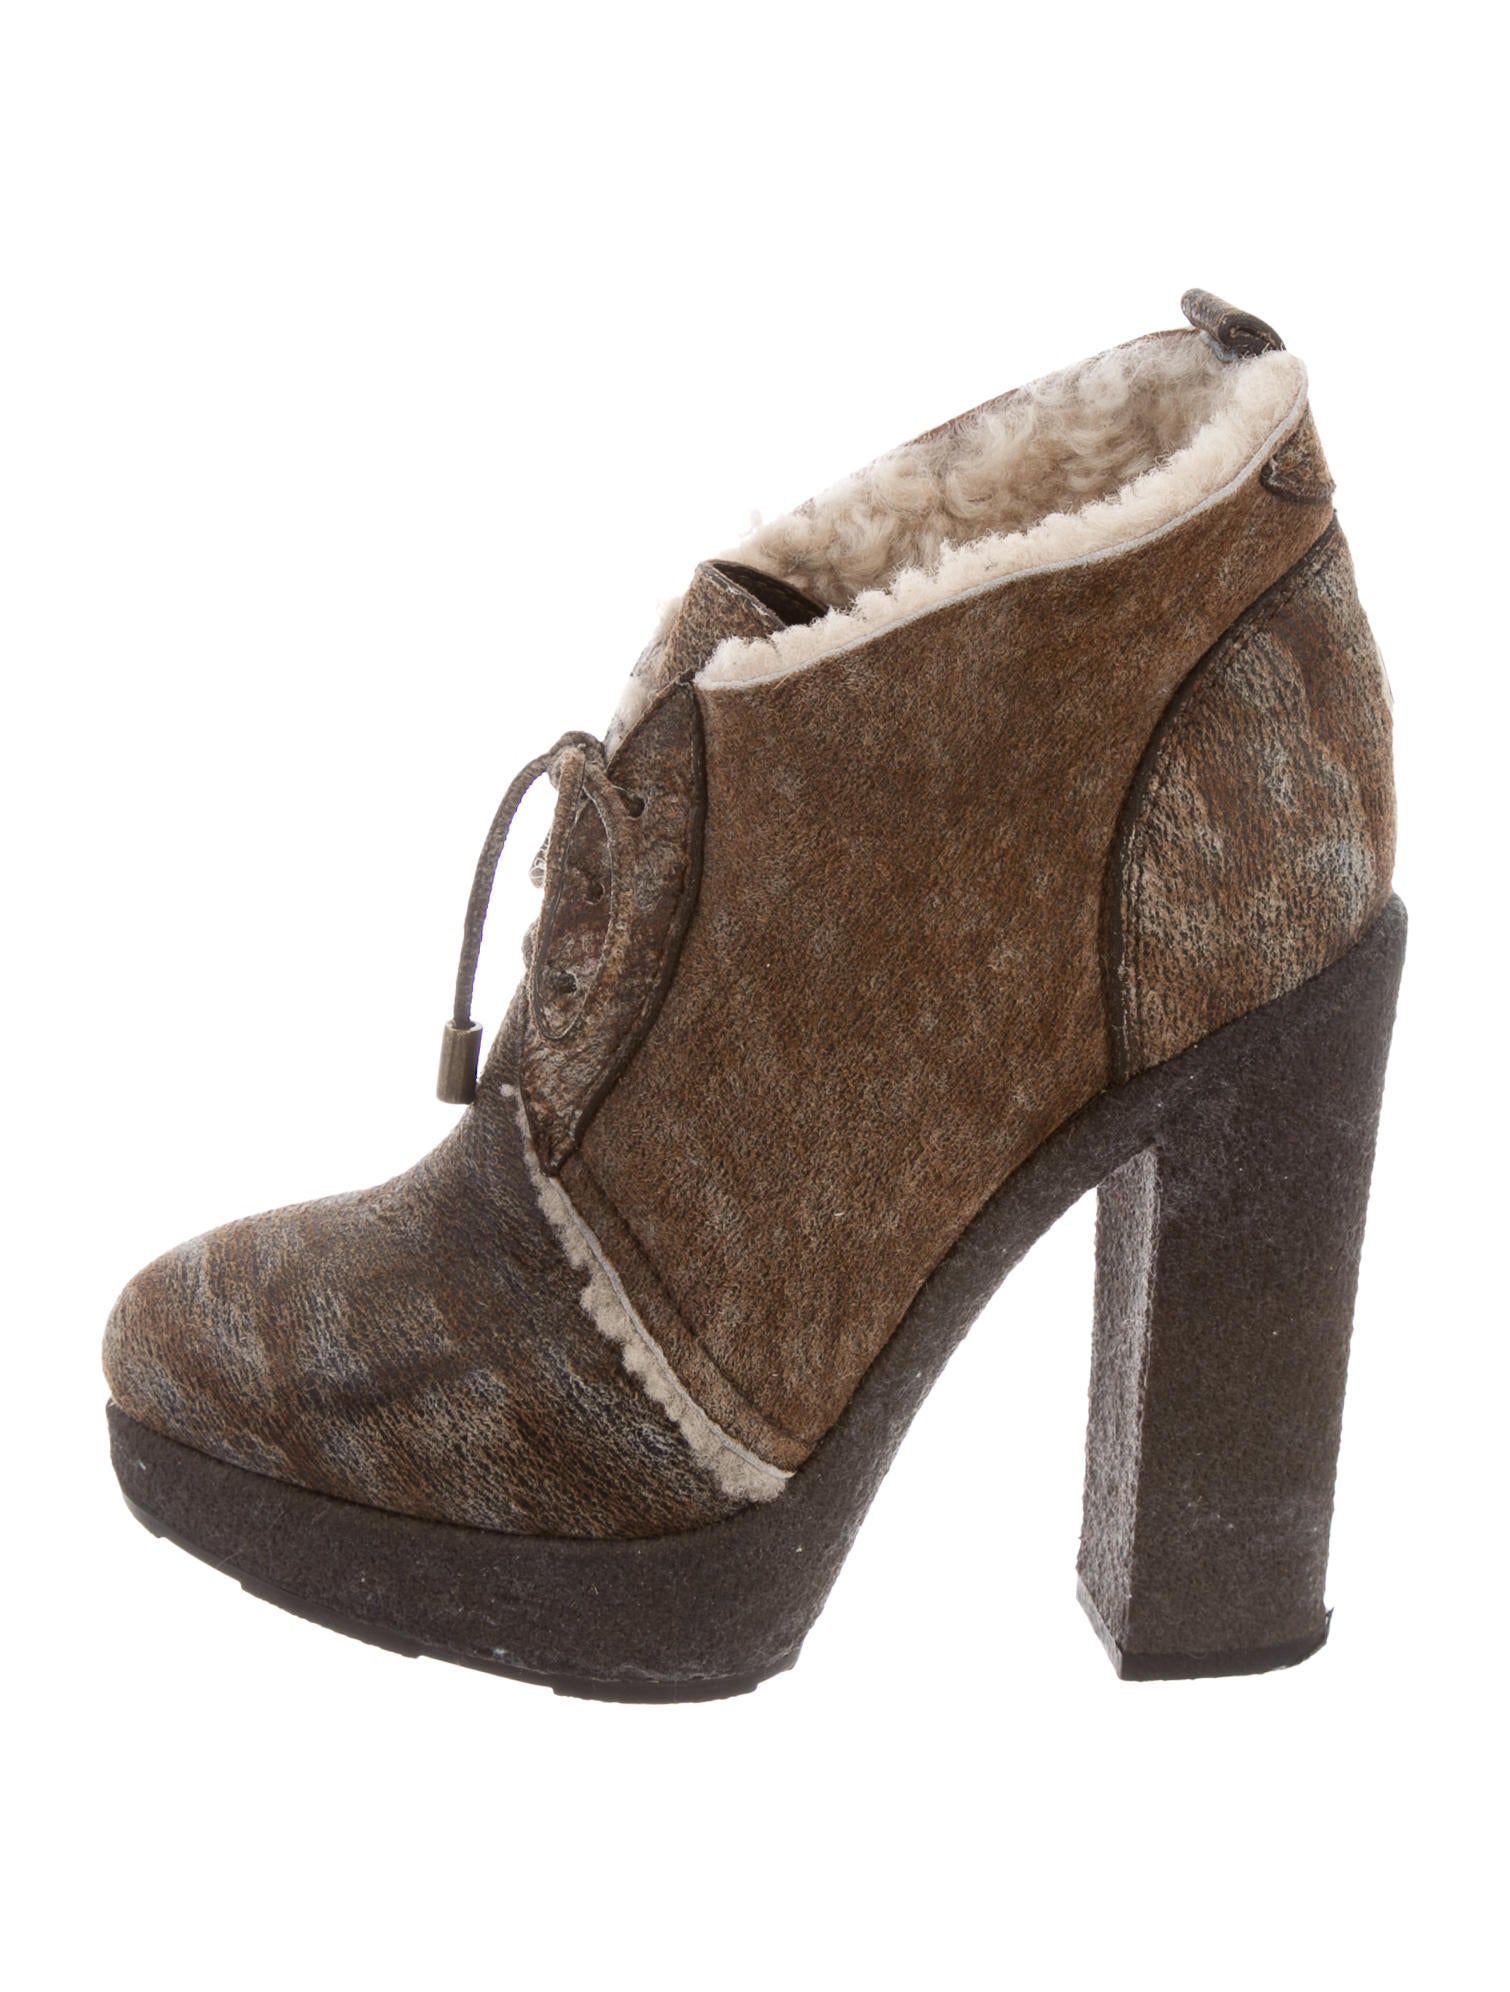 Moncler Shearling-Trimmed Platform Booties low shipping cheap online for sale online store EzkRK